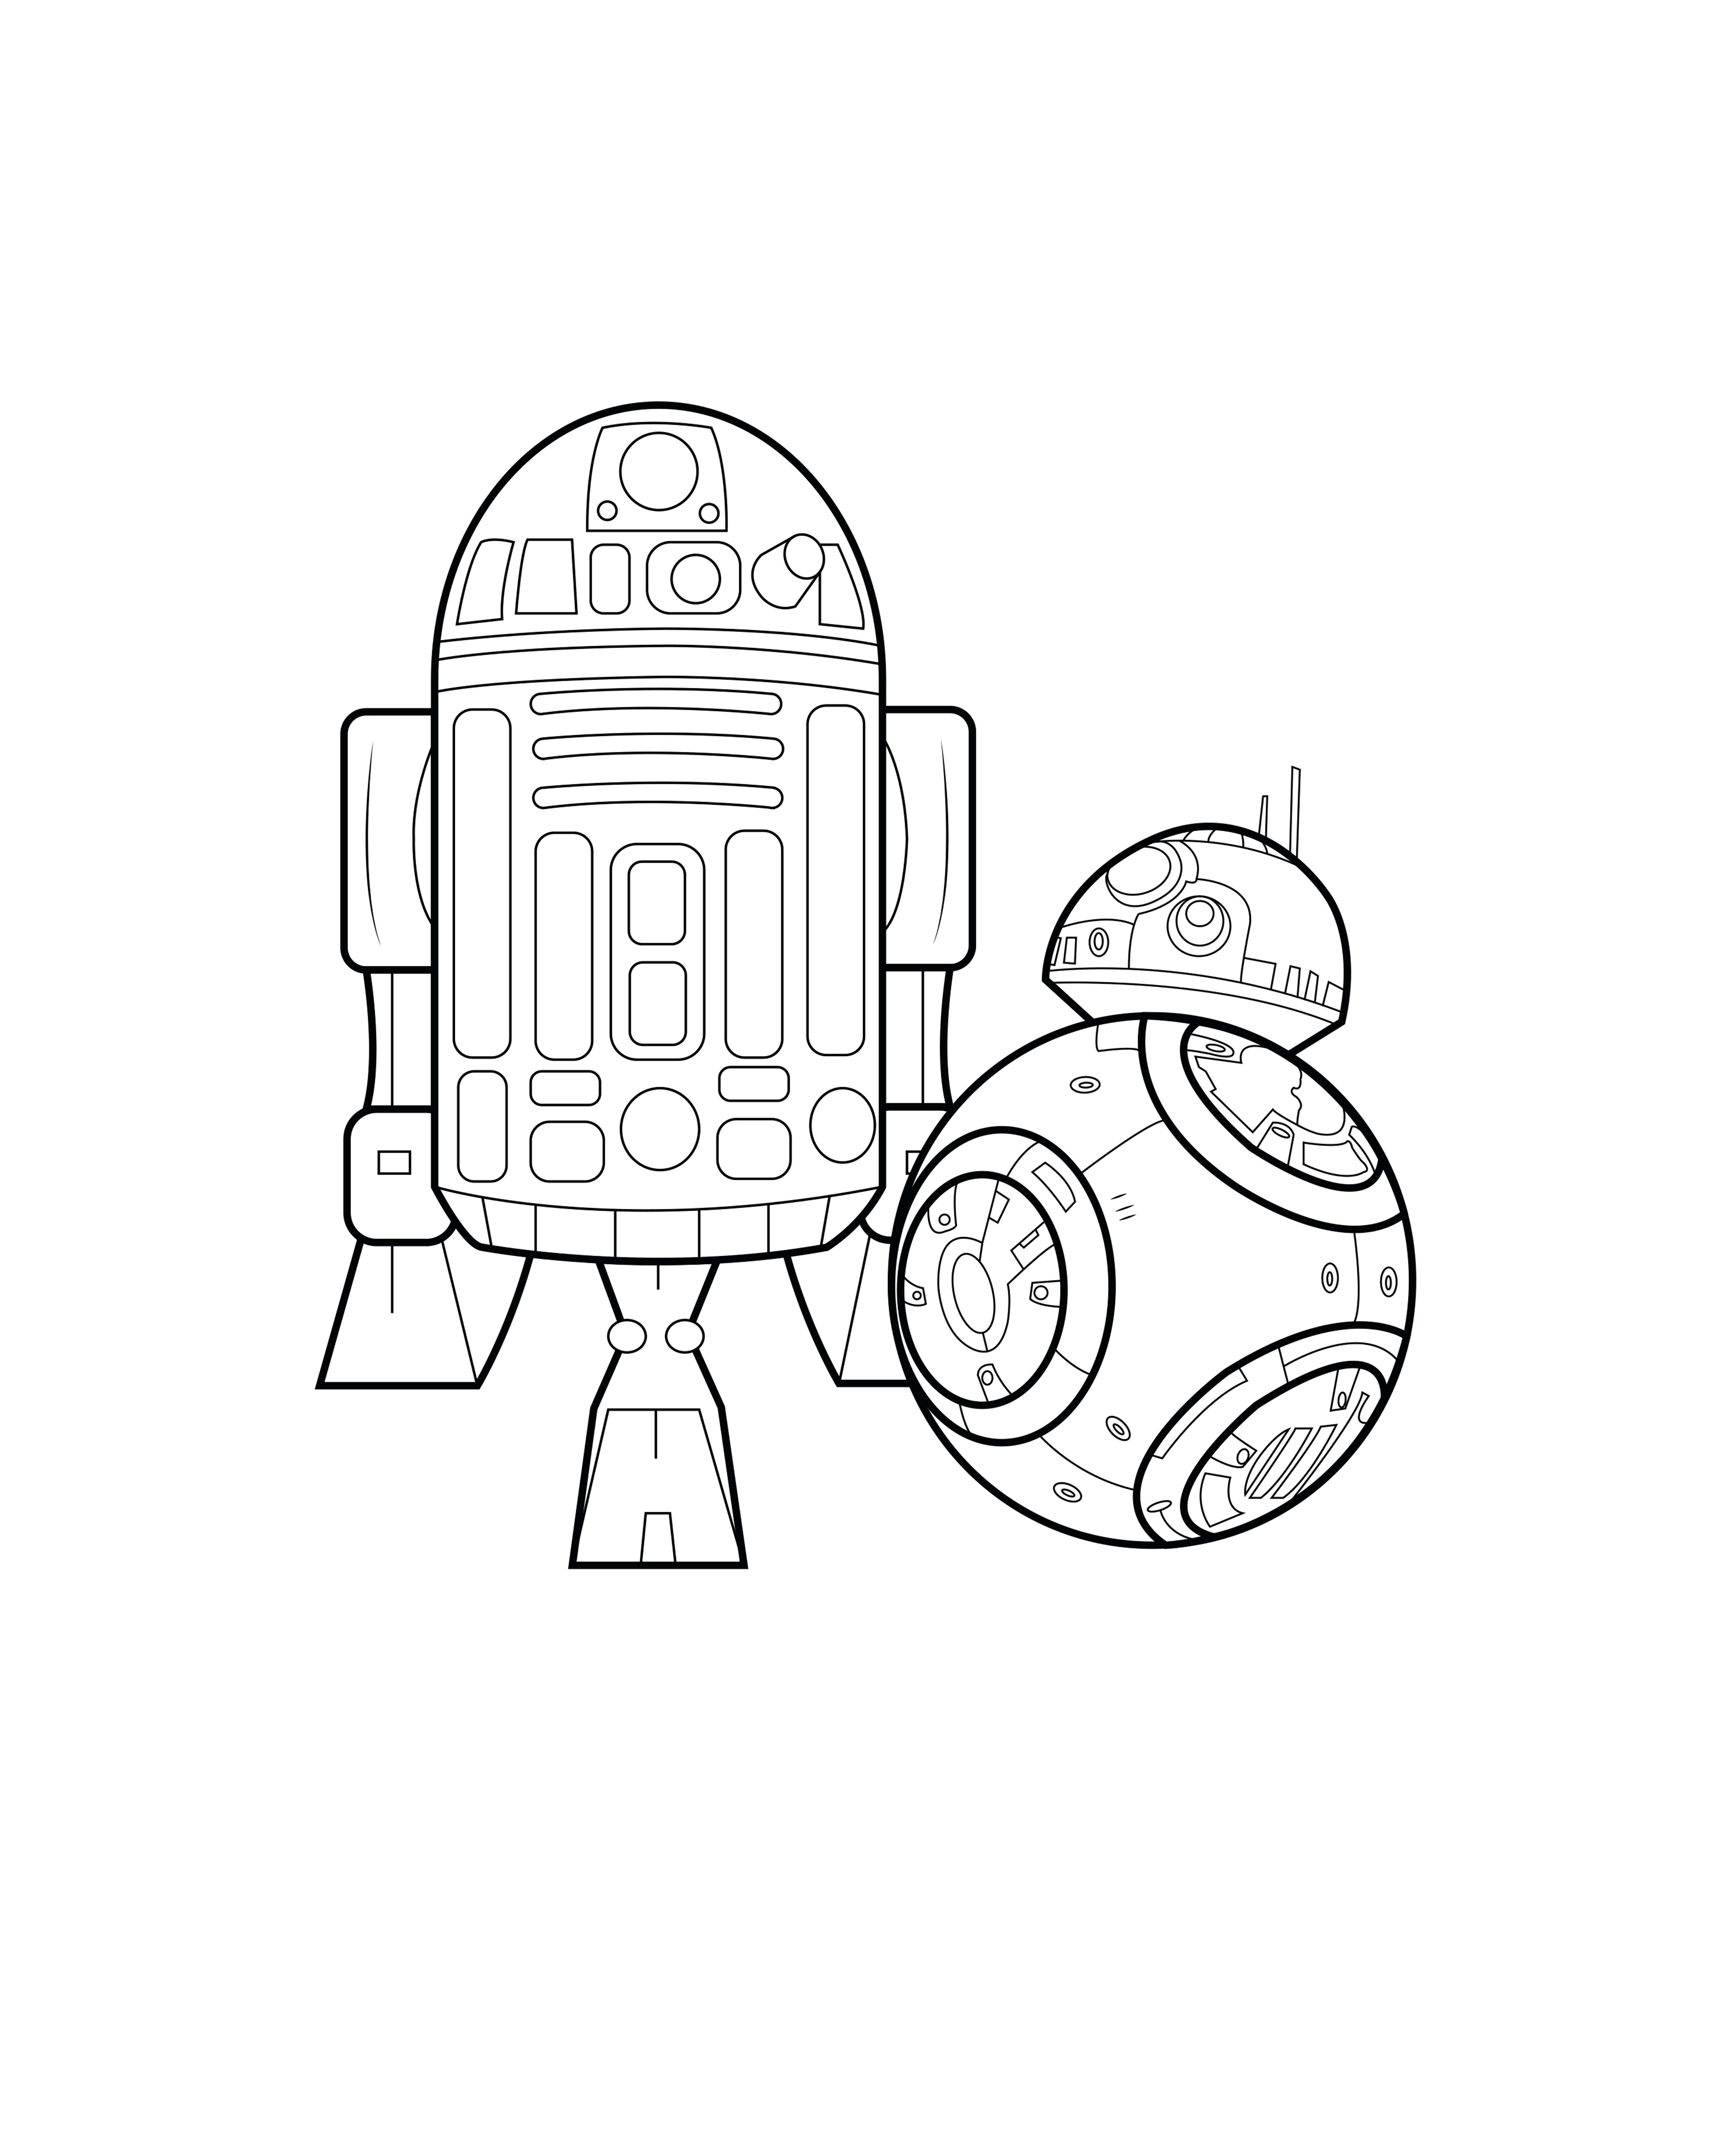 Bb8 R2d2 By Allan Movies Coloring Pages For Adults Justcolor